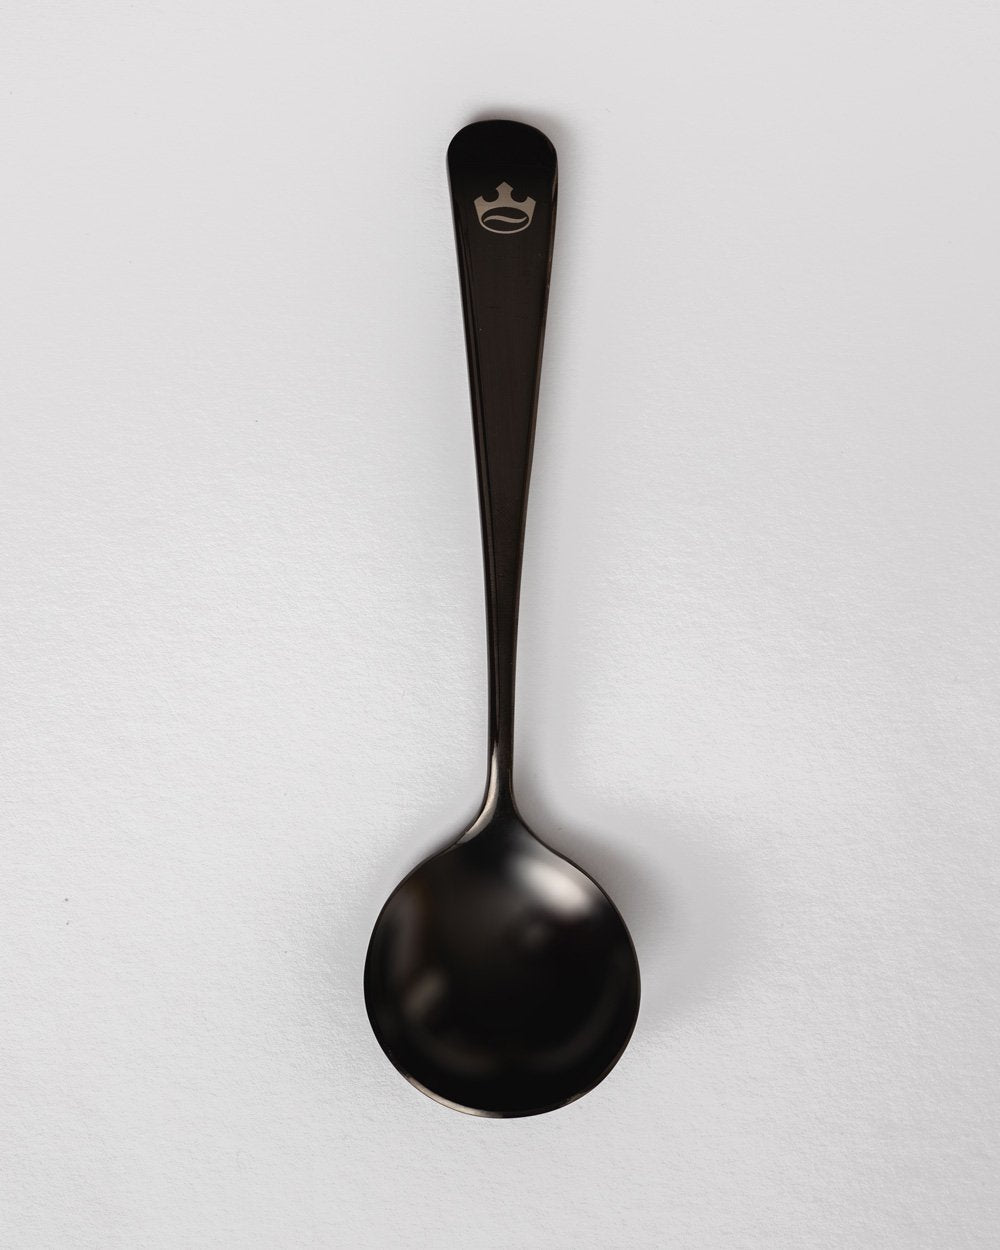 Jacobs Cupping Spoon Jacobs Kaffee - Johann Jacobs Haus